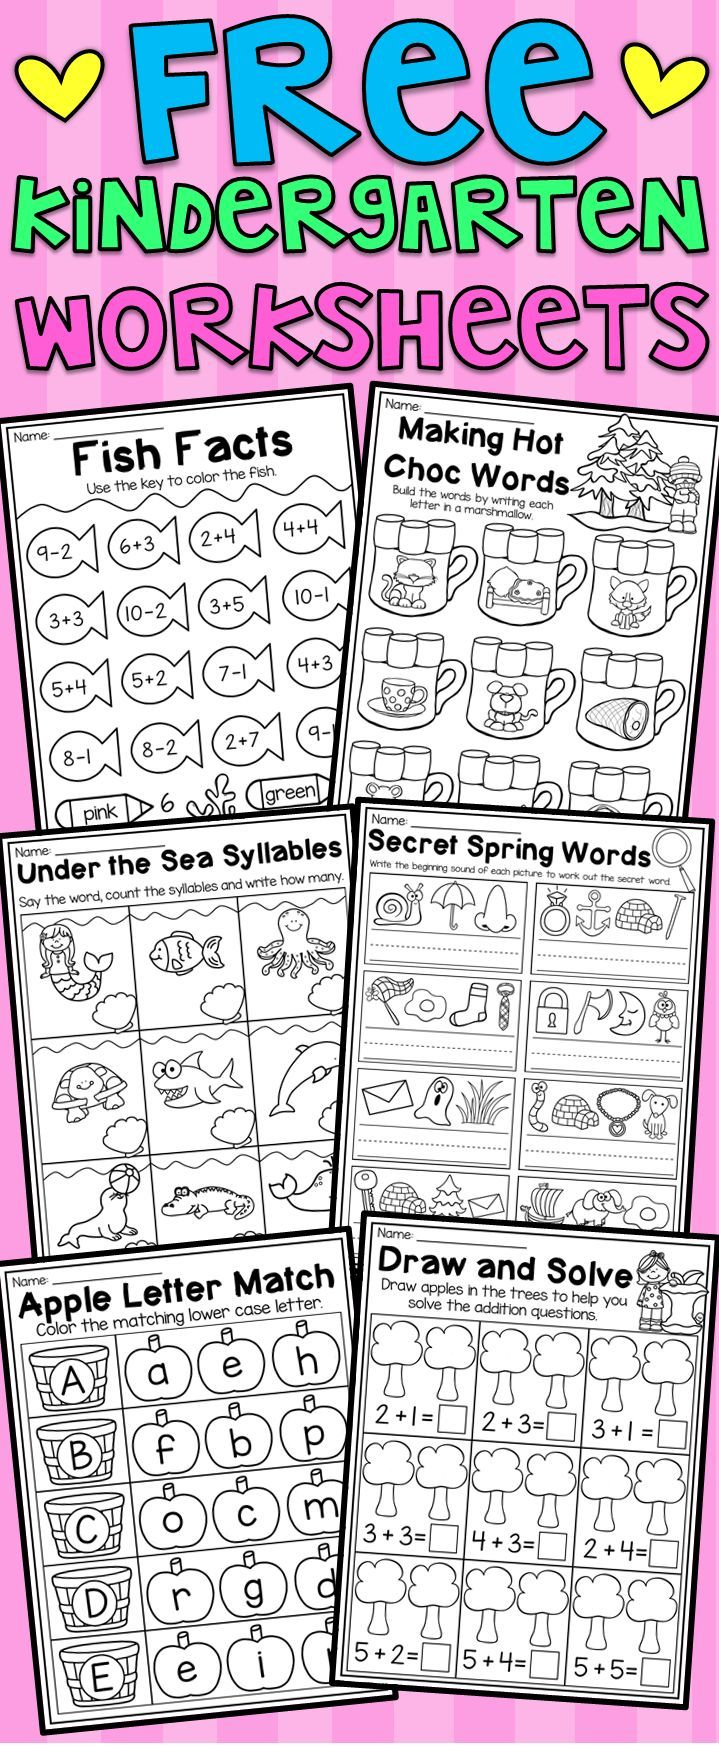 Free Kindergarten Math And Language Arts Worksheets This Free Pack Includes Six Ma Kindergarten Math Free Free Kindergarten Worksheets Homeschool Kindergarten [ 1747 x 719 Pixel ]